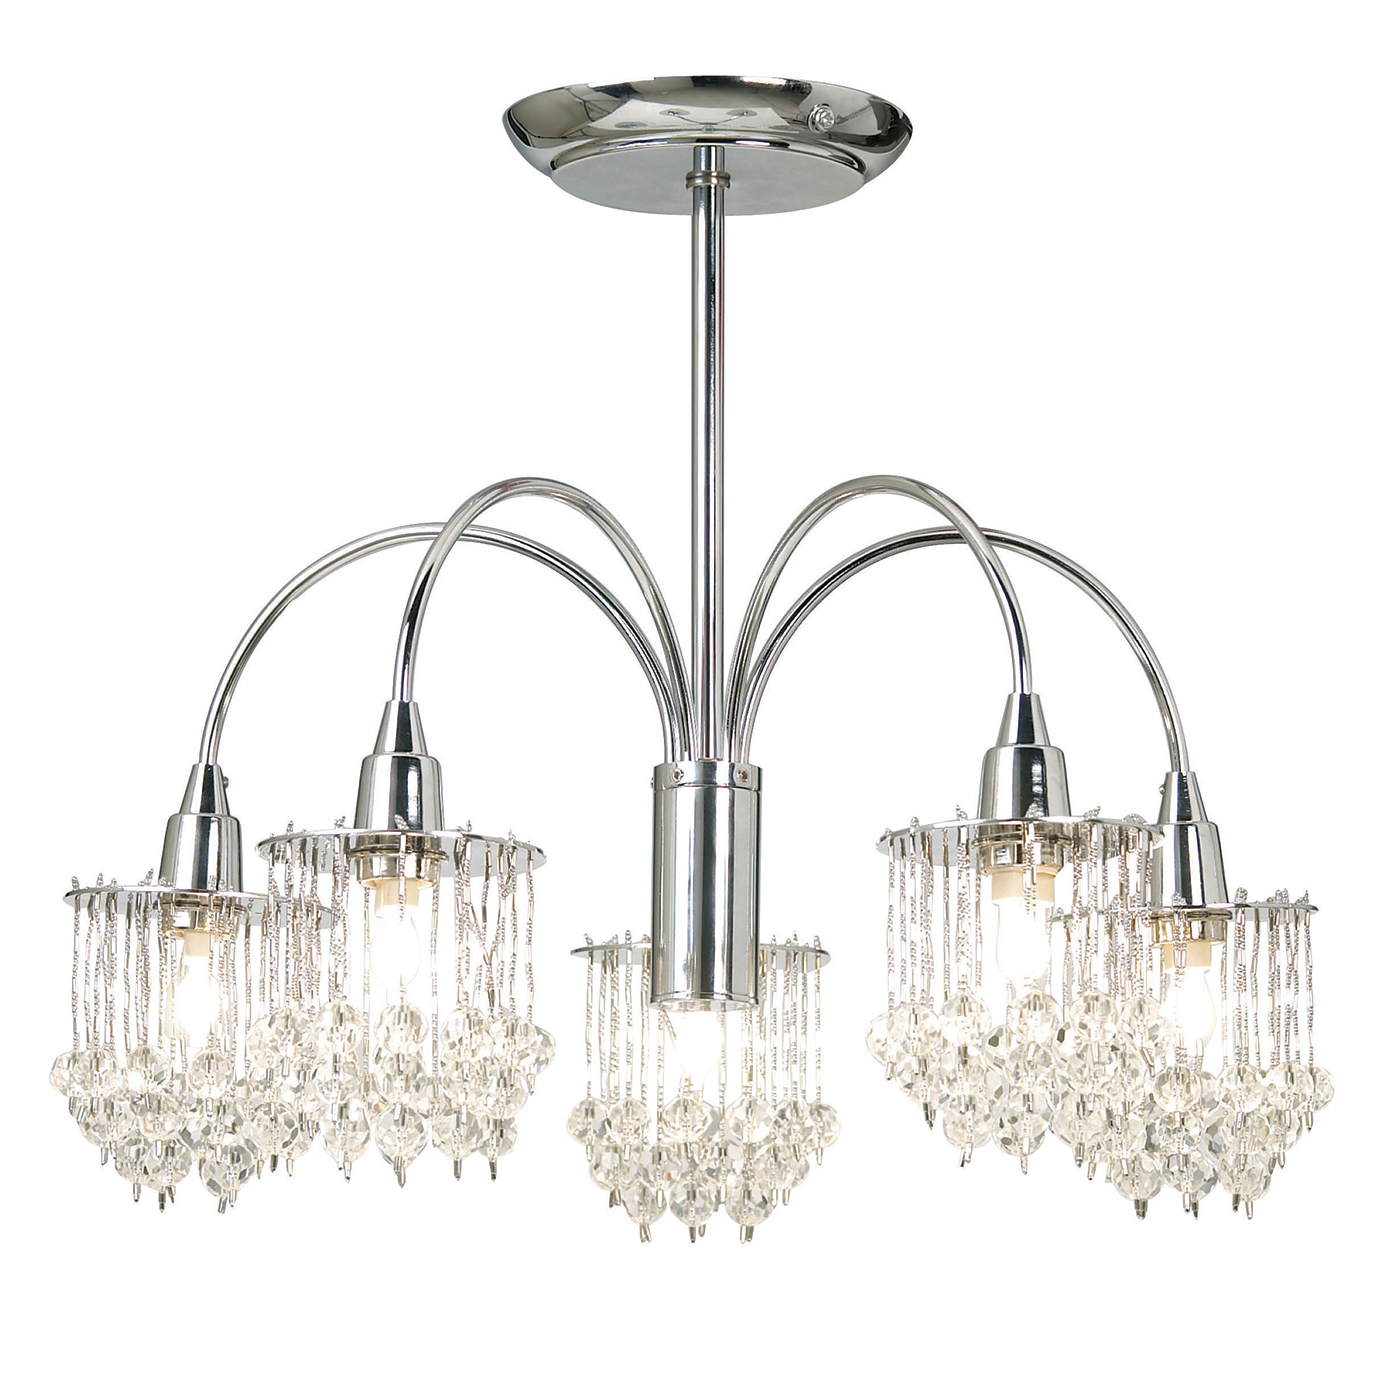 Endon Milieu ceiling light 5x 33W Chrome effect & clear faceted glass beads